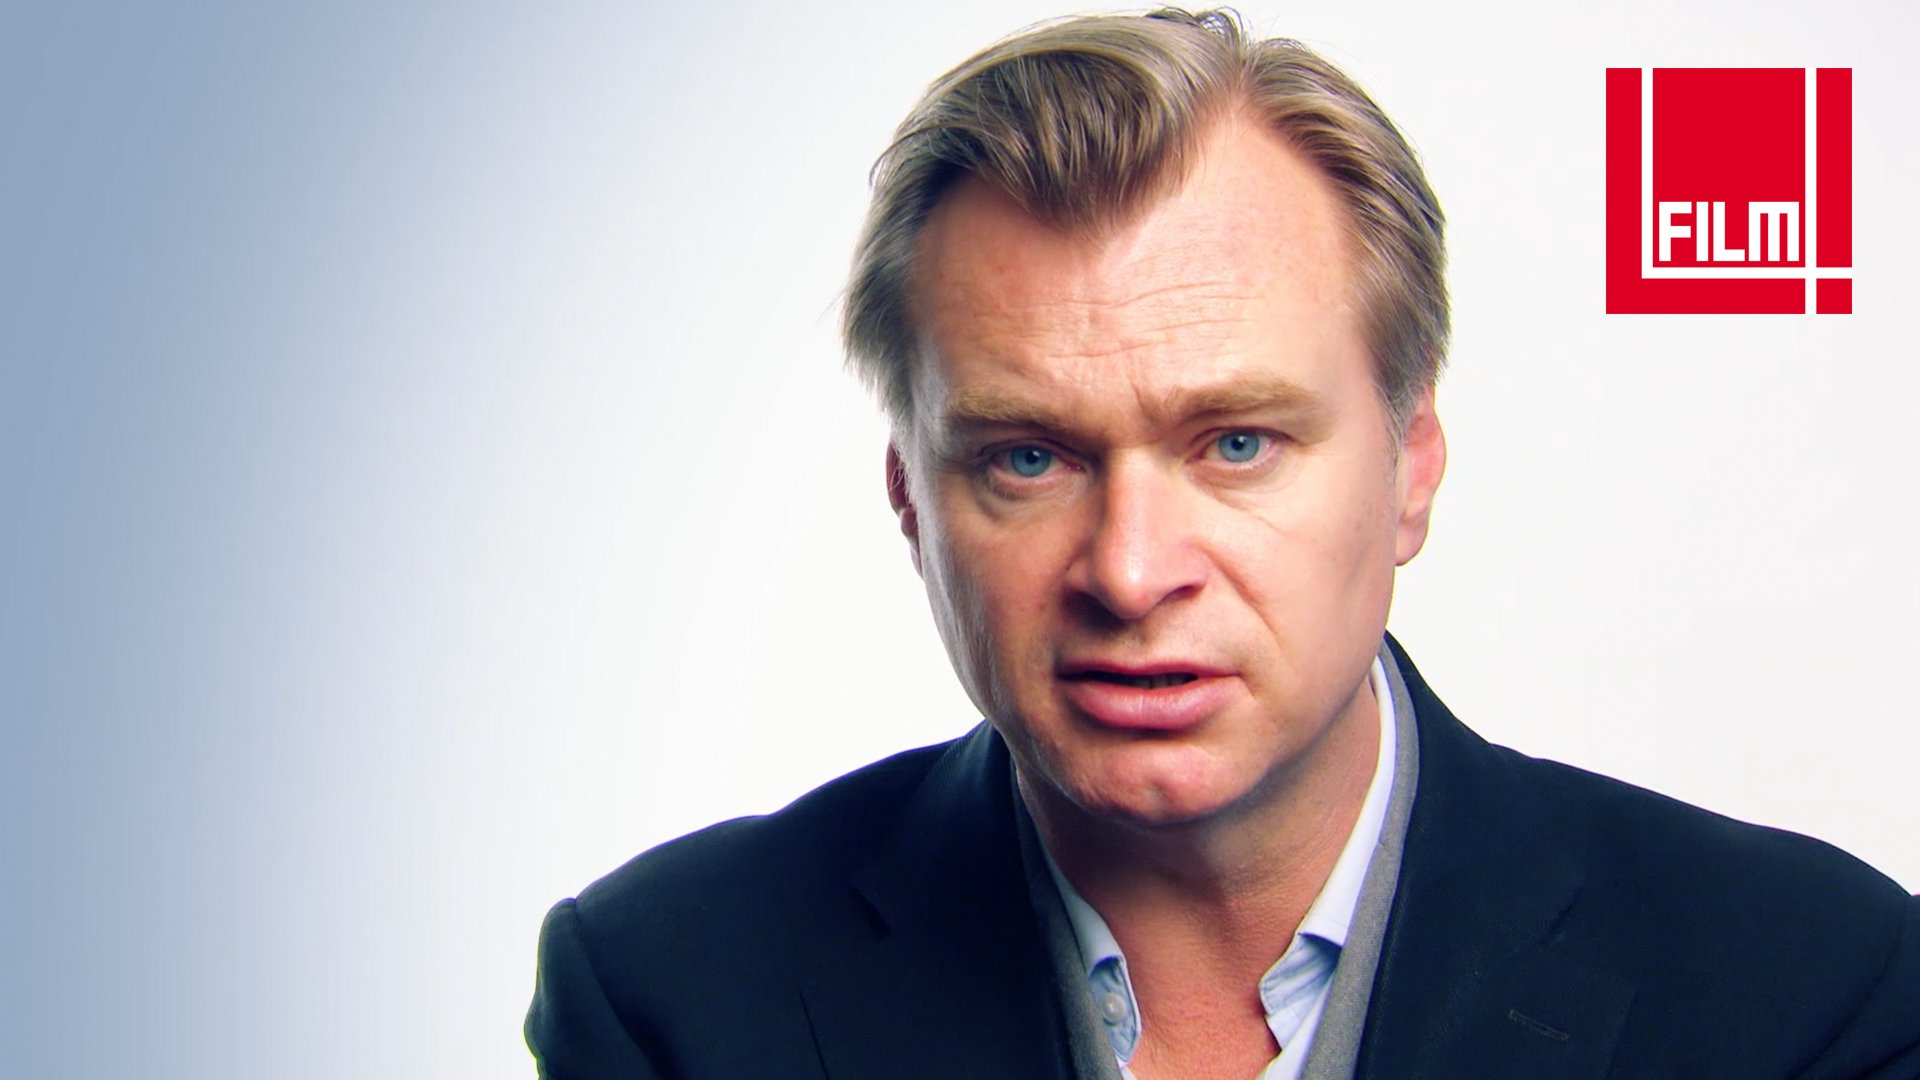 Christopher Nolan on rewiring the three-act structure for Dunkirk: https://t.co/0PGBYnsiY3